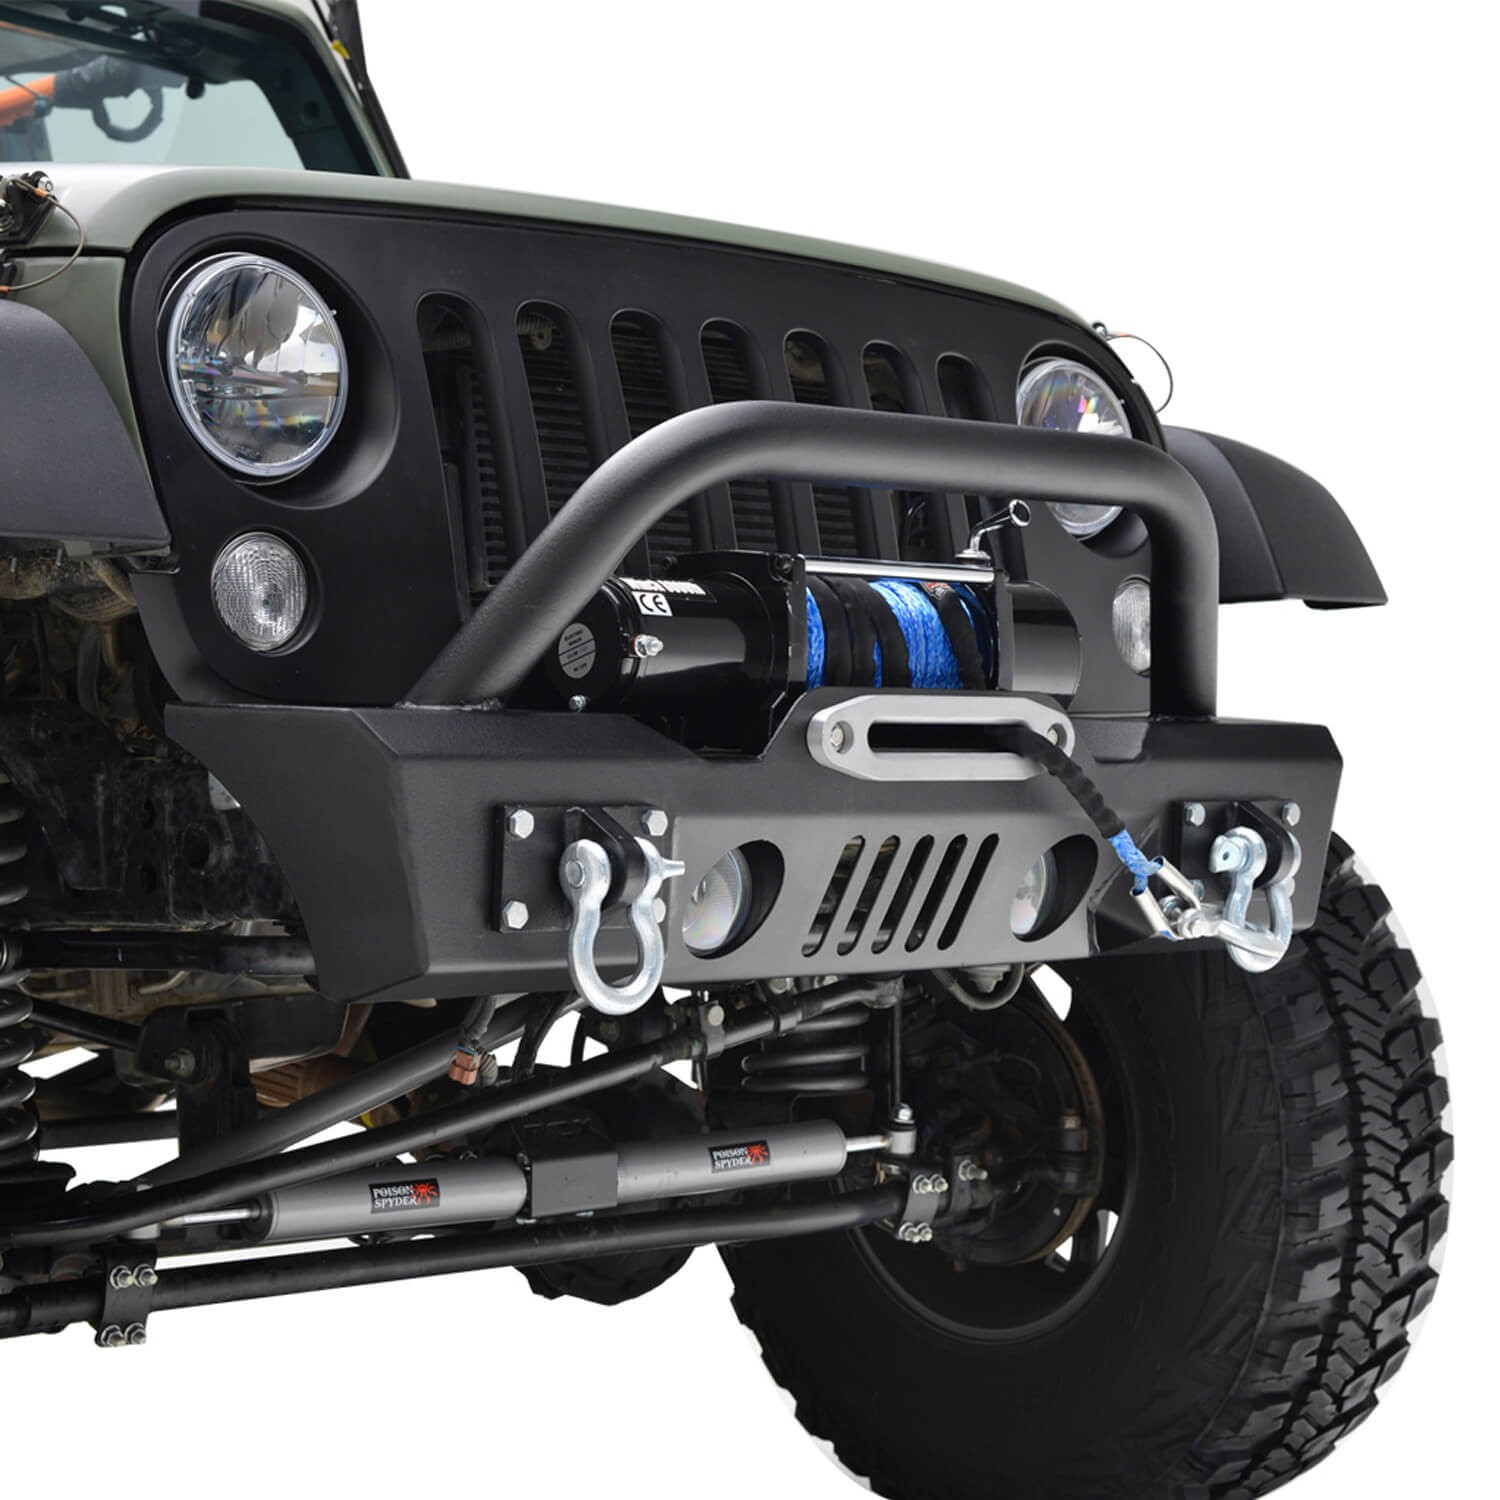 Jeep Tj Wire Harness Schematics Data Wiring Diagrams Disconnecting Jk Stubby Bumper With Winch Plate No Stinger Got Led Wrangler Disconnect Hardtop